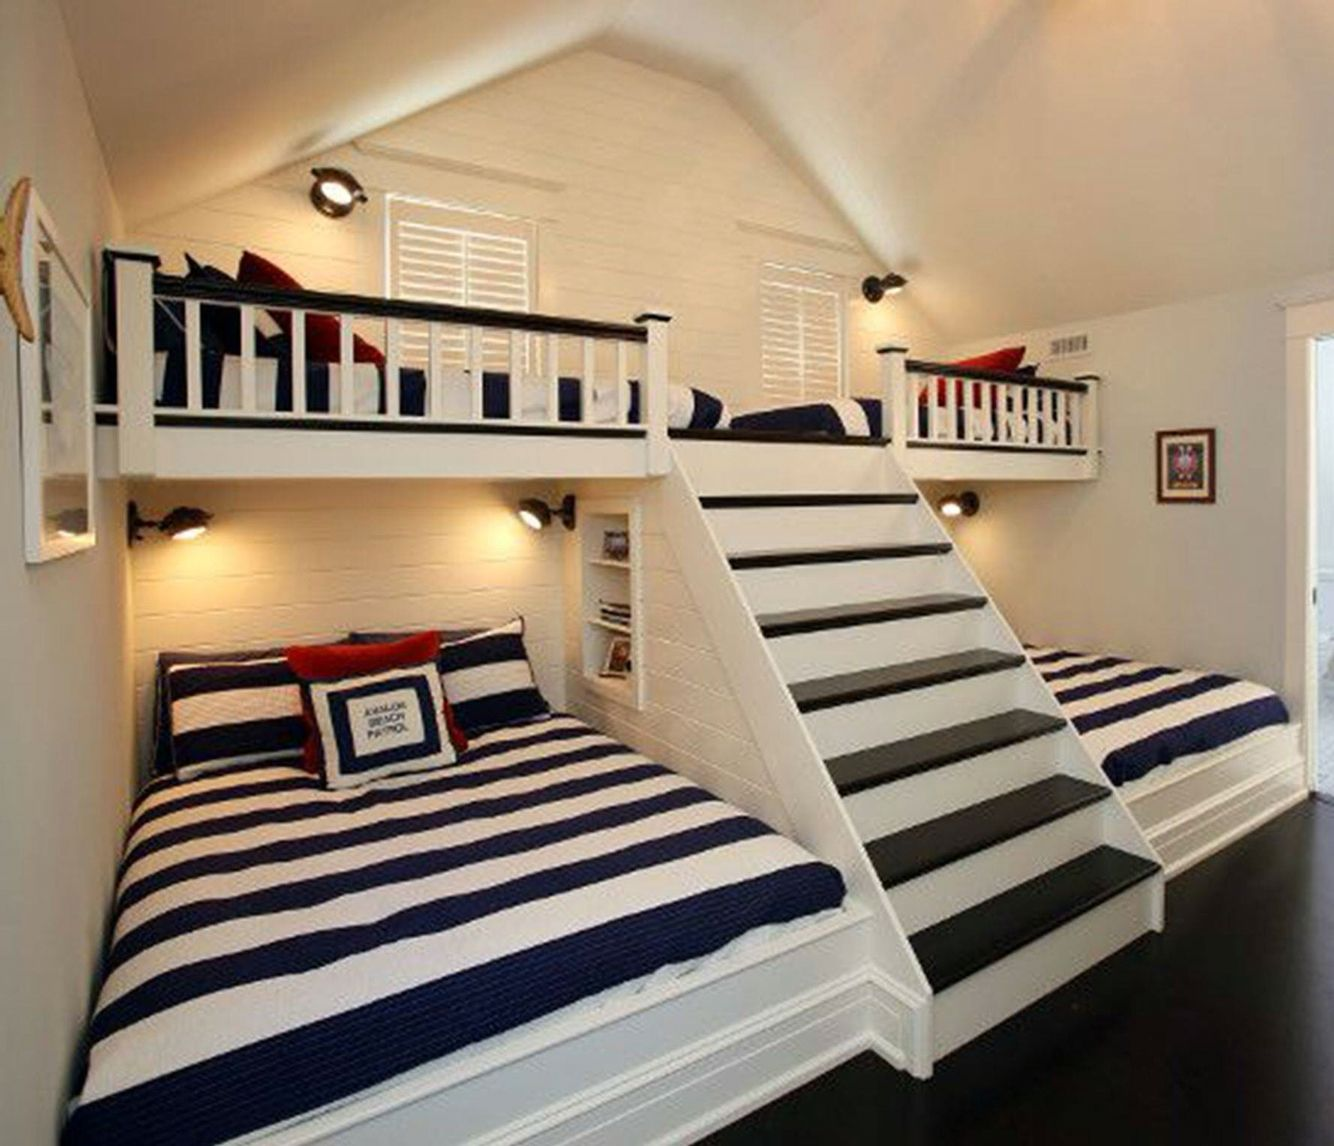 50 Tiny House Design With Bunk Beds Decoratoo